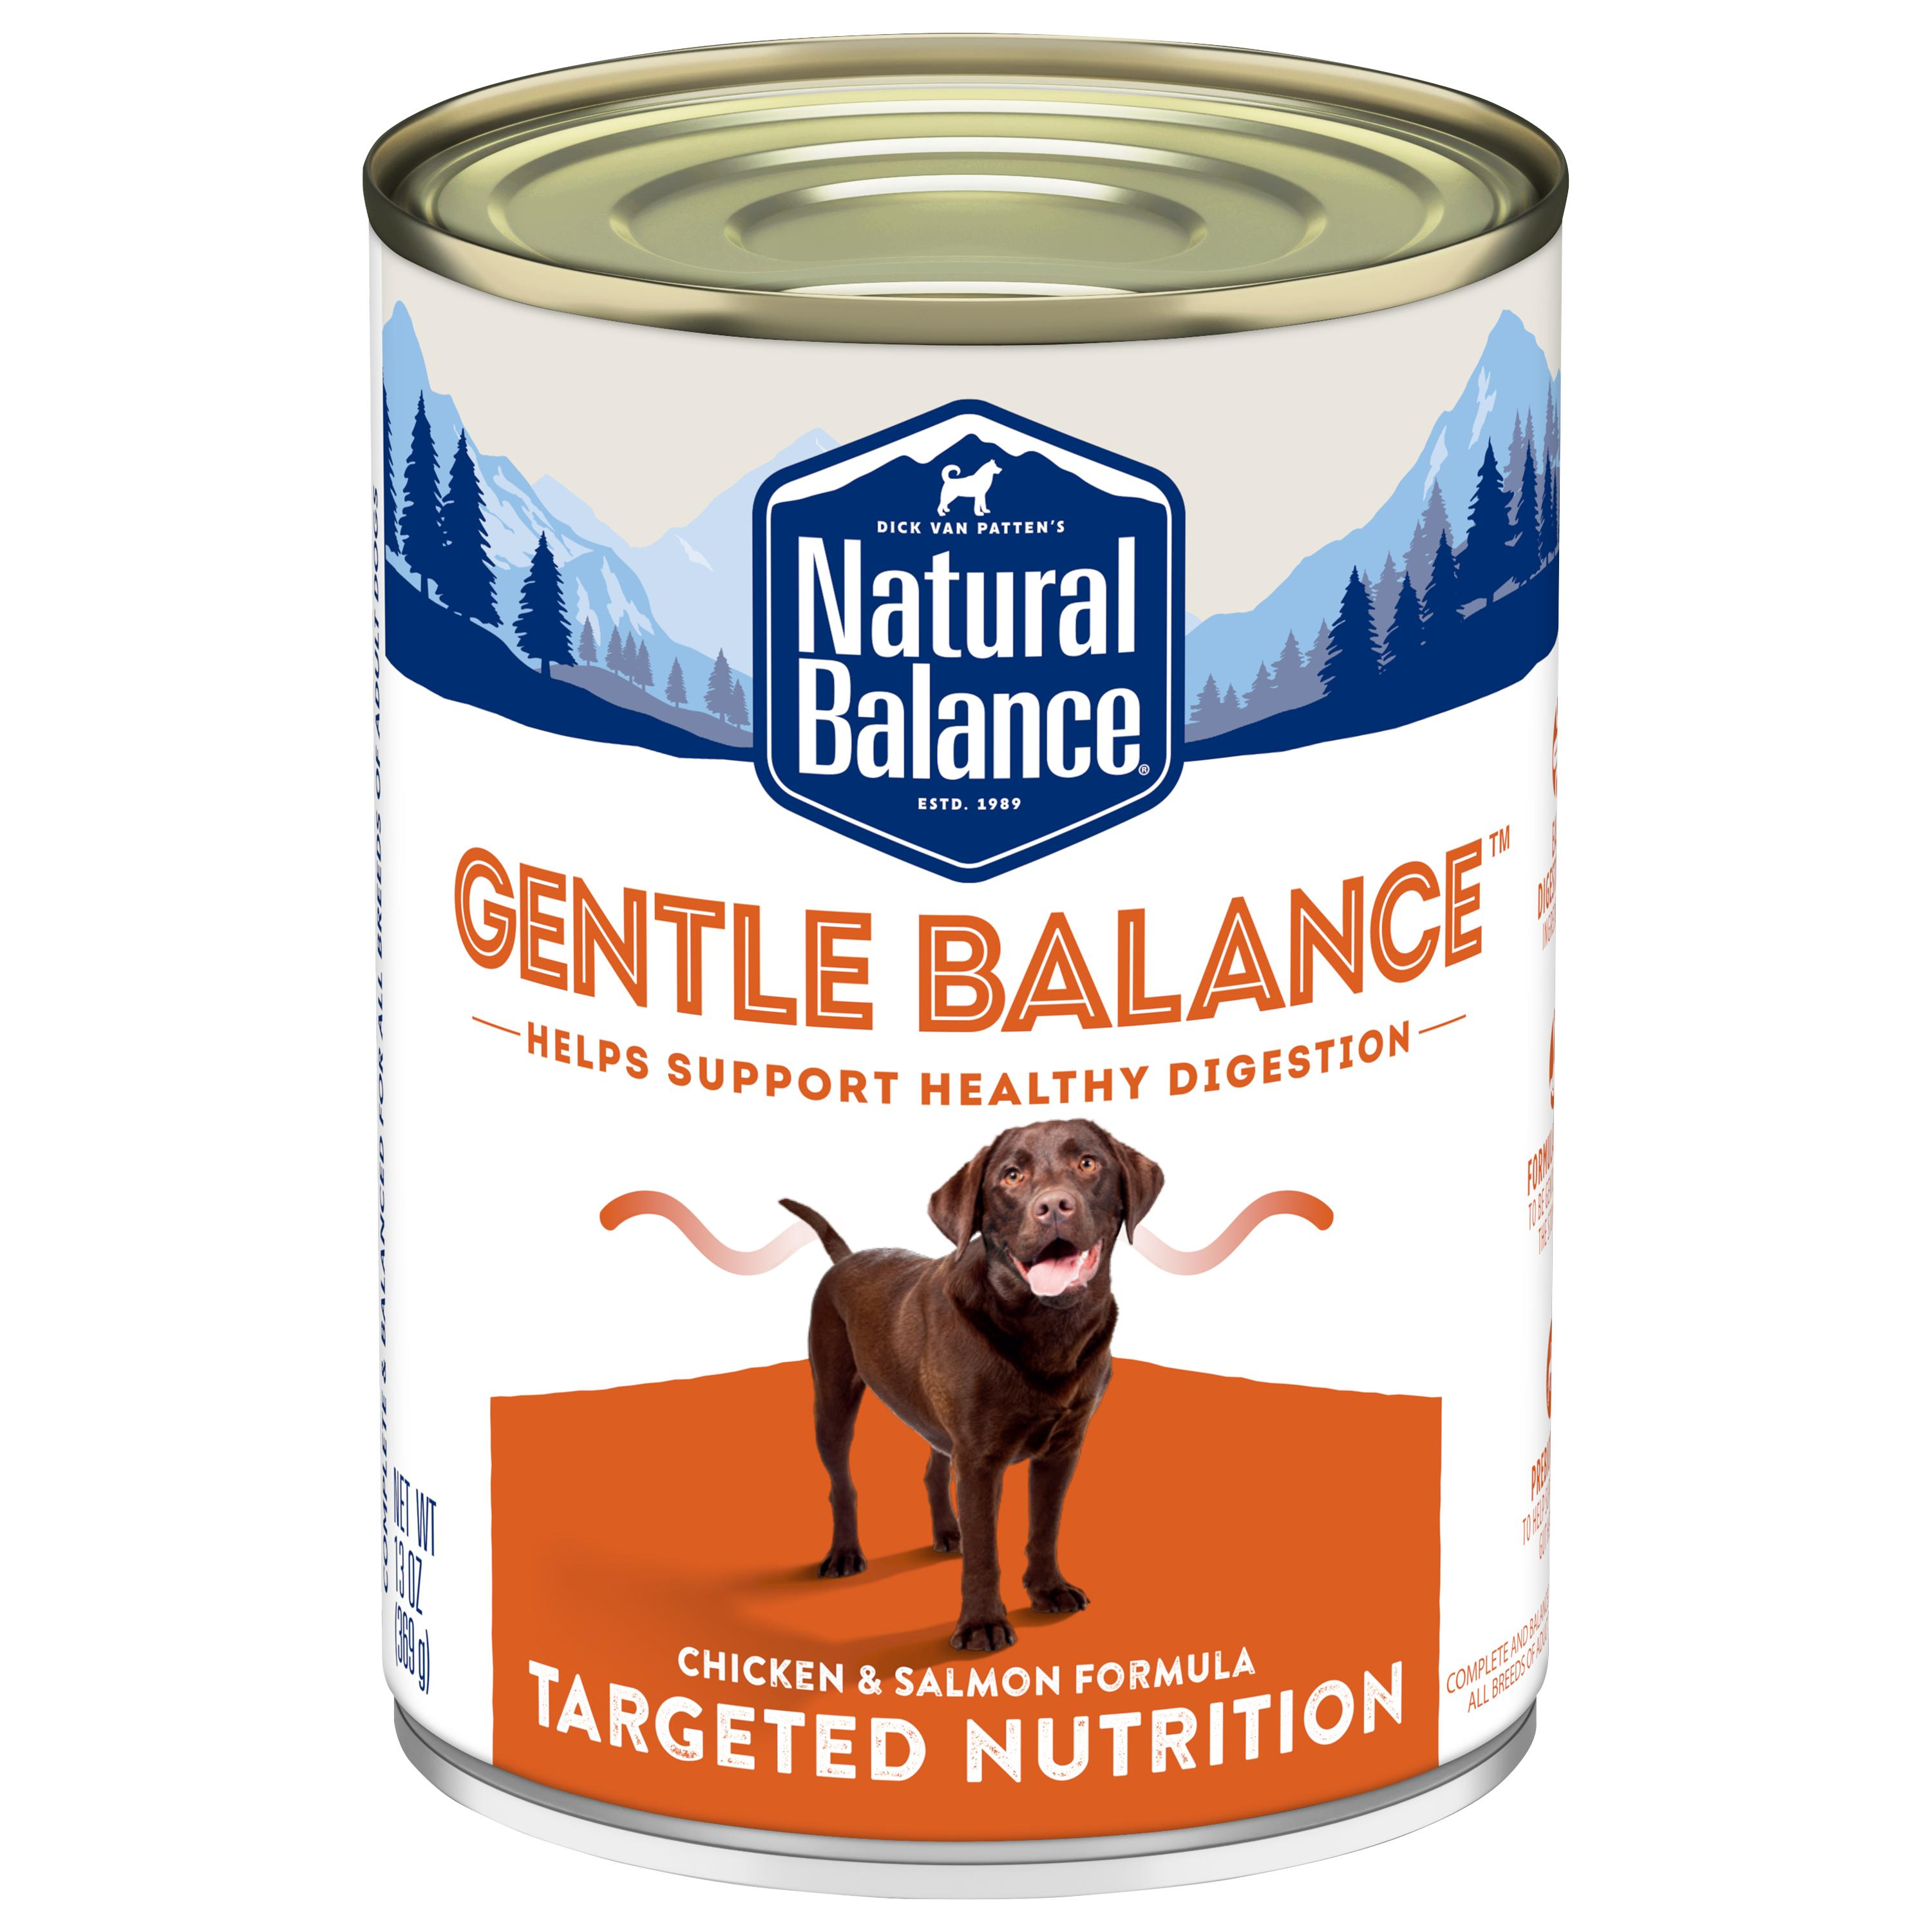 Natural Balance Targeted Nutrition Gentle Balance Chicken & Salmon Canned Dog Food Image